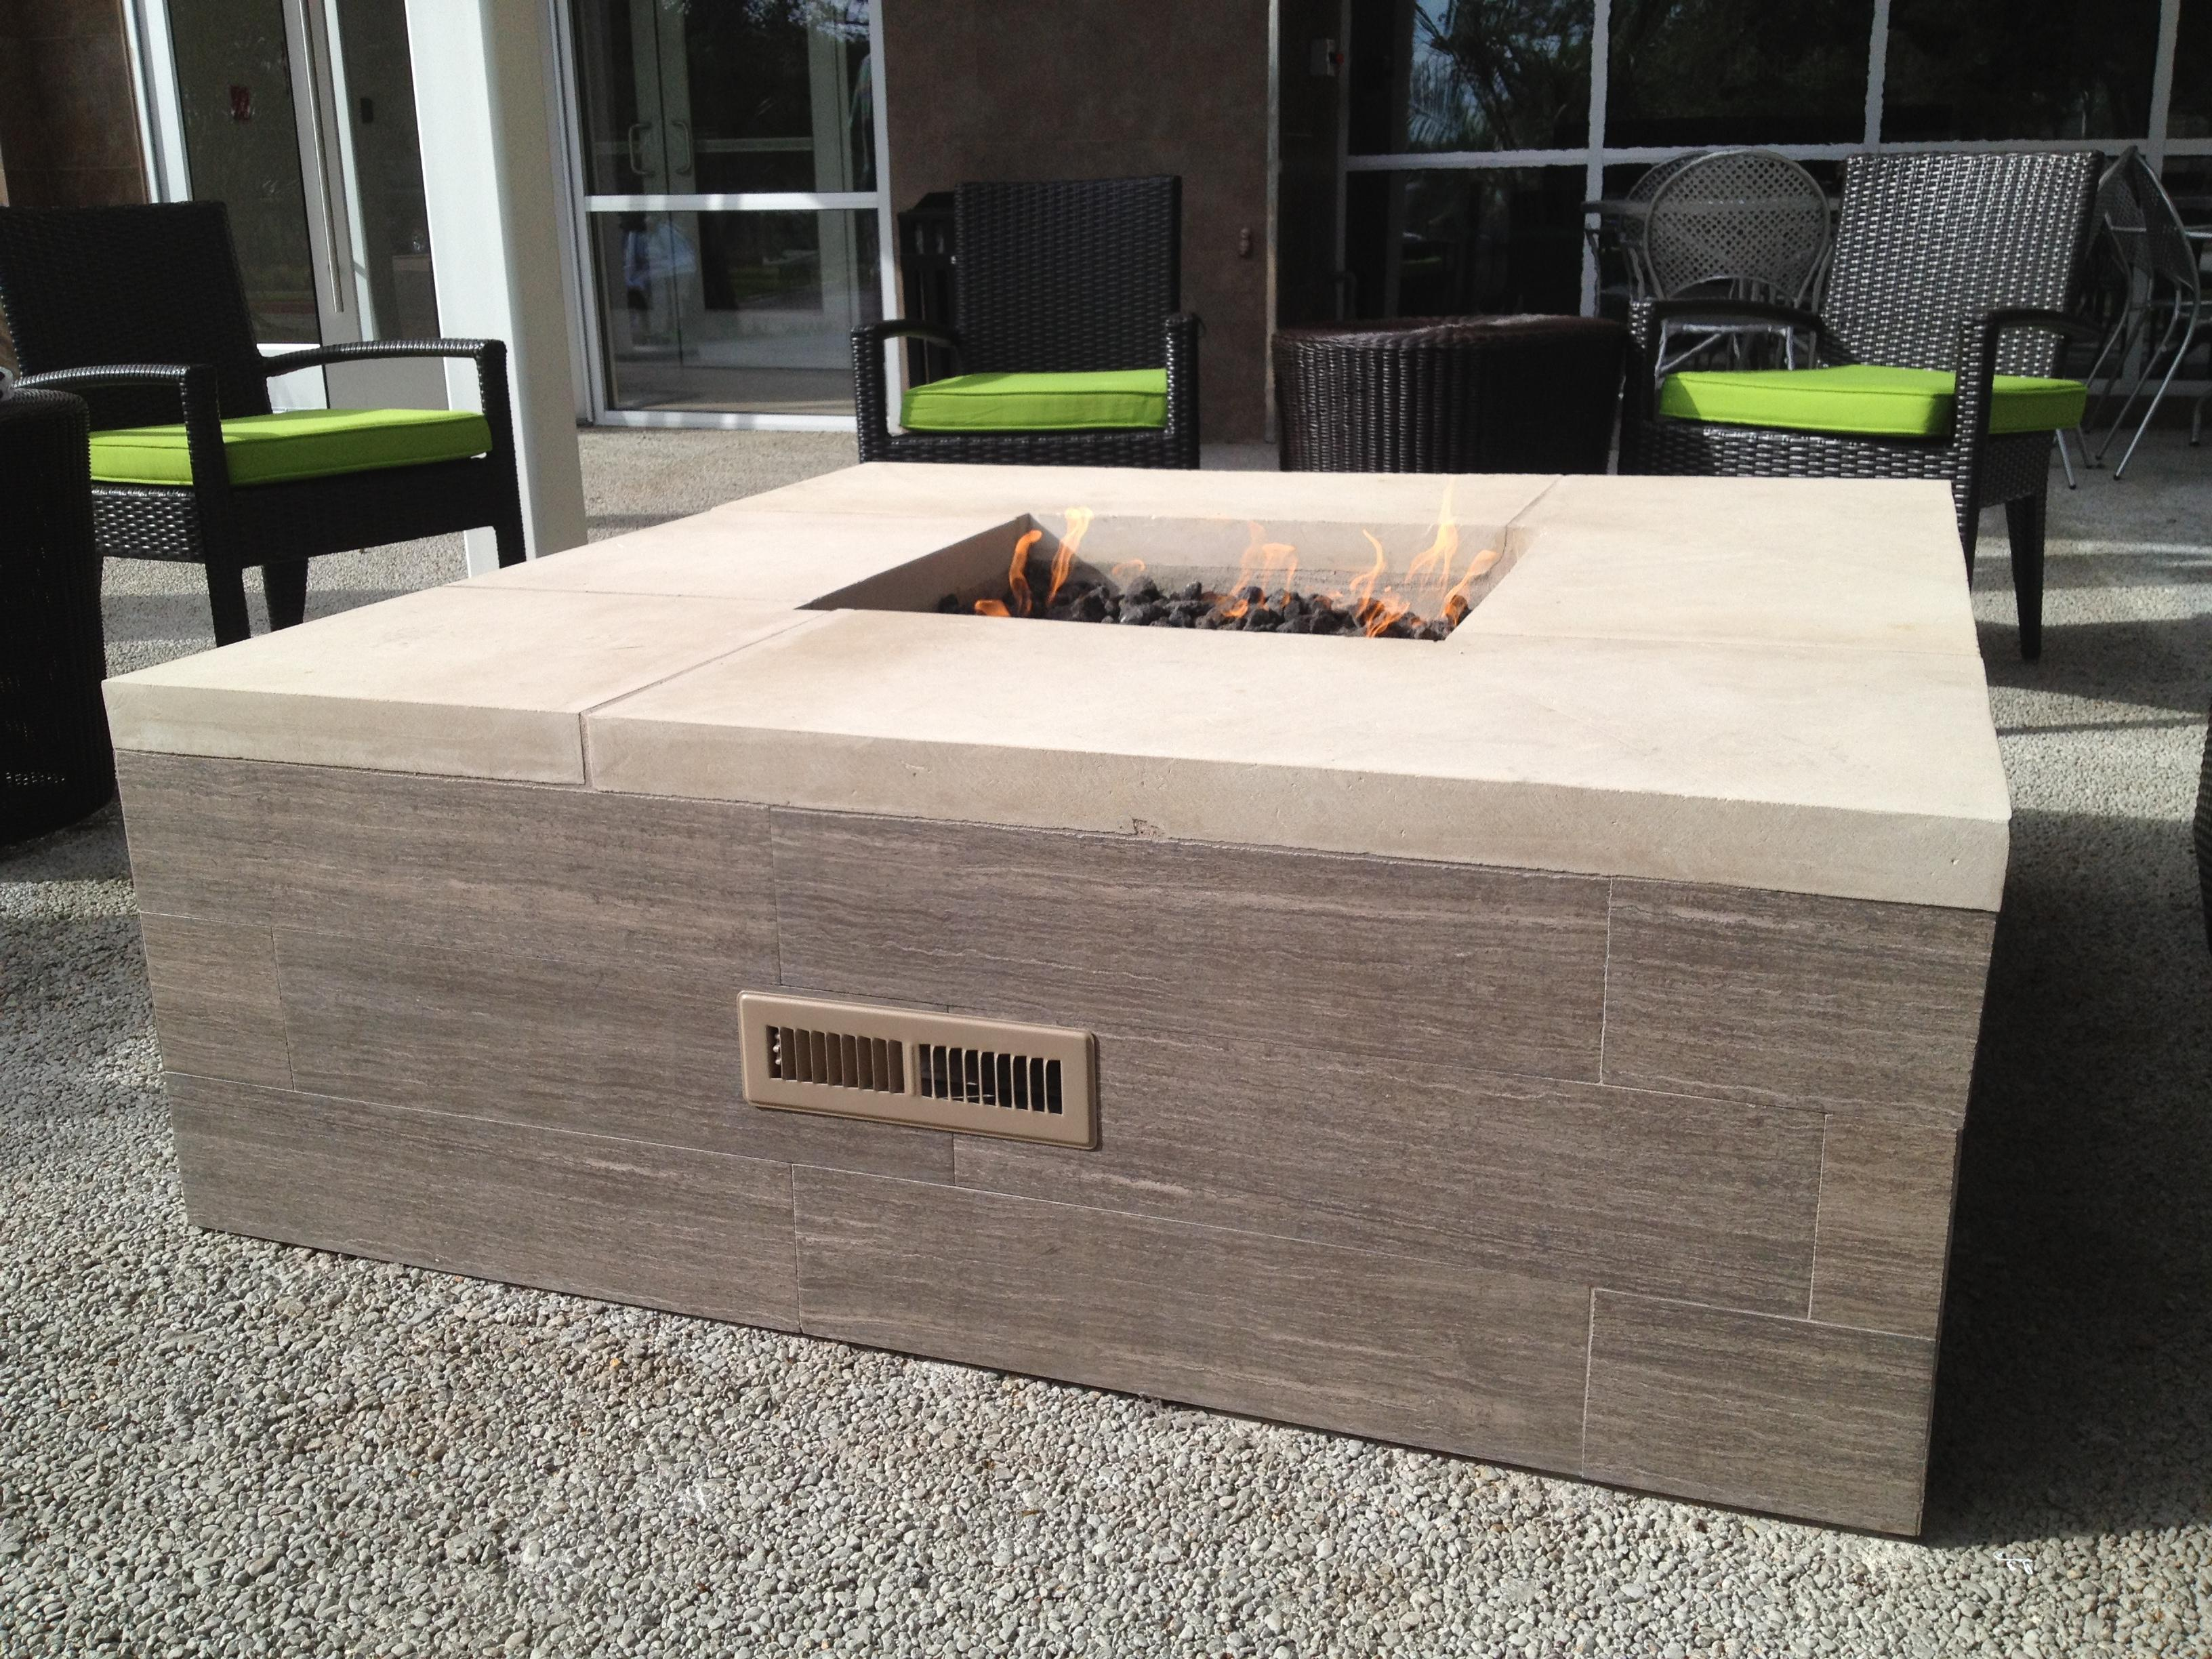 Austin Outdoor Kitchens Fire Pits Outdoor Kitchens Pergolas New Wave Pools Austin